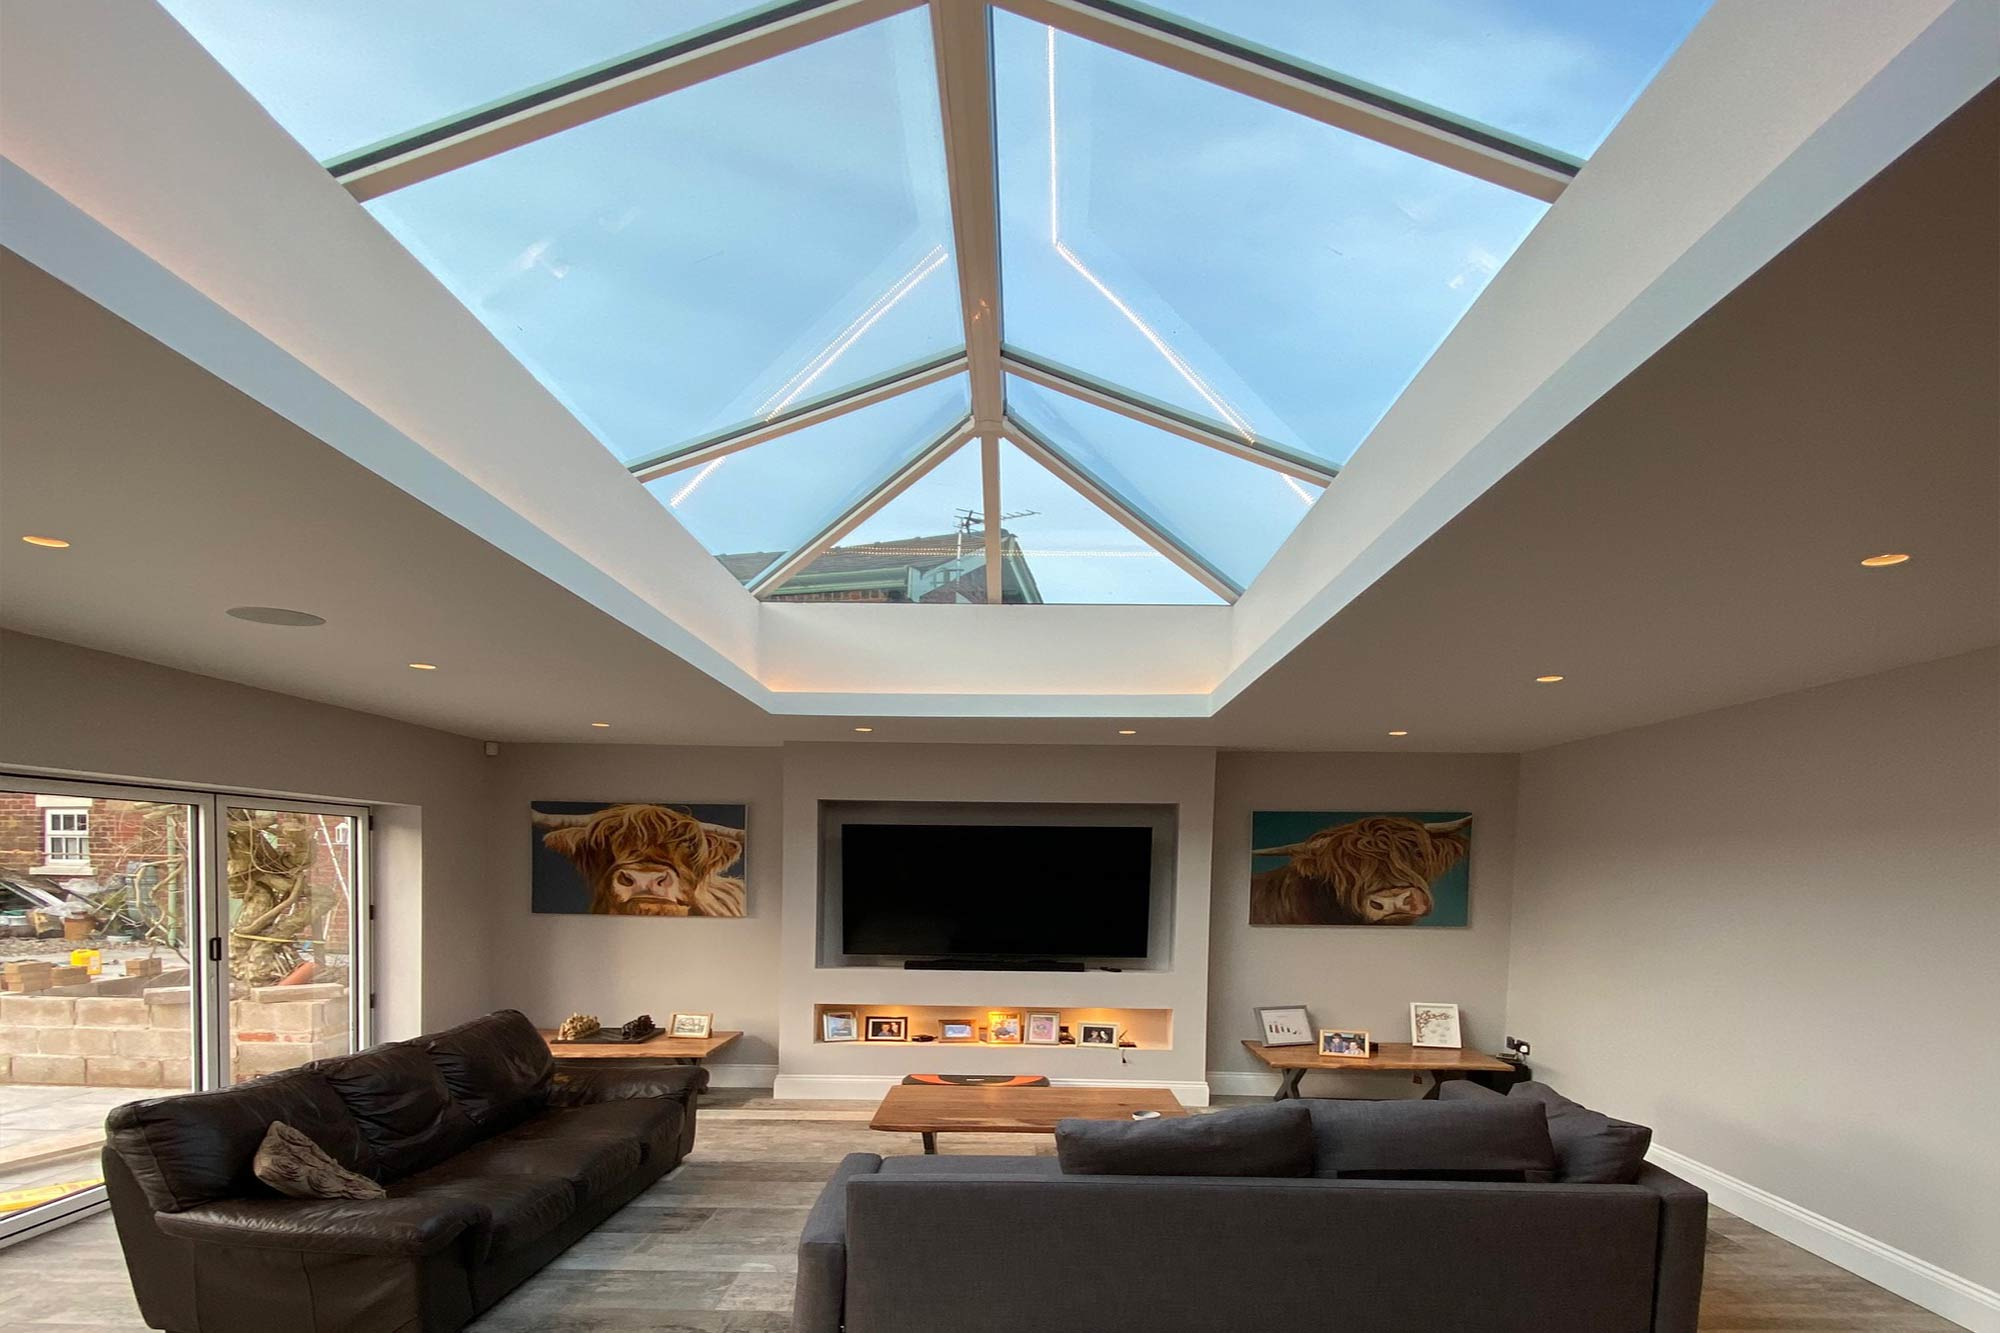 Interior of a large contemporary extension, featuring oversized lantern